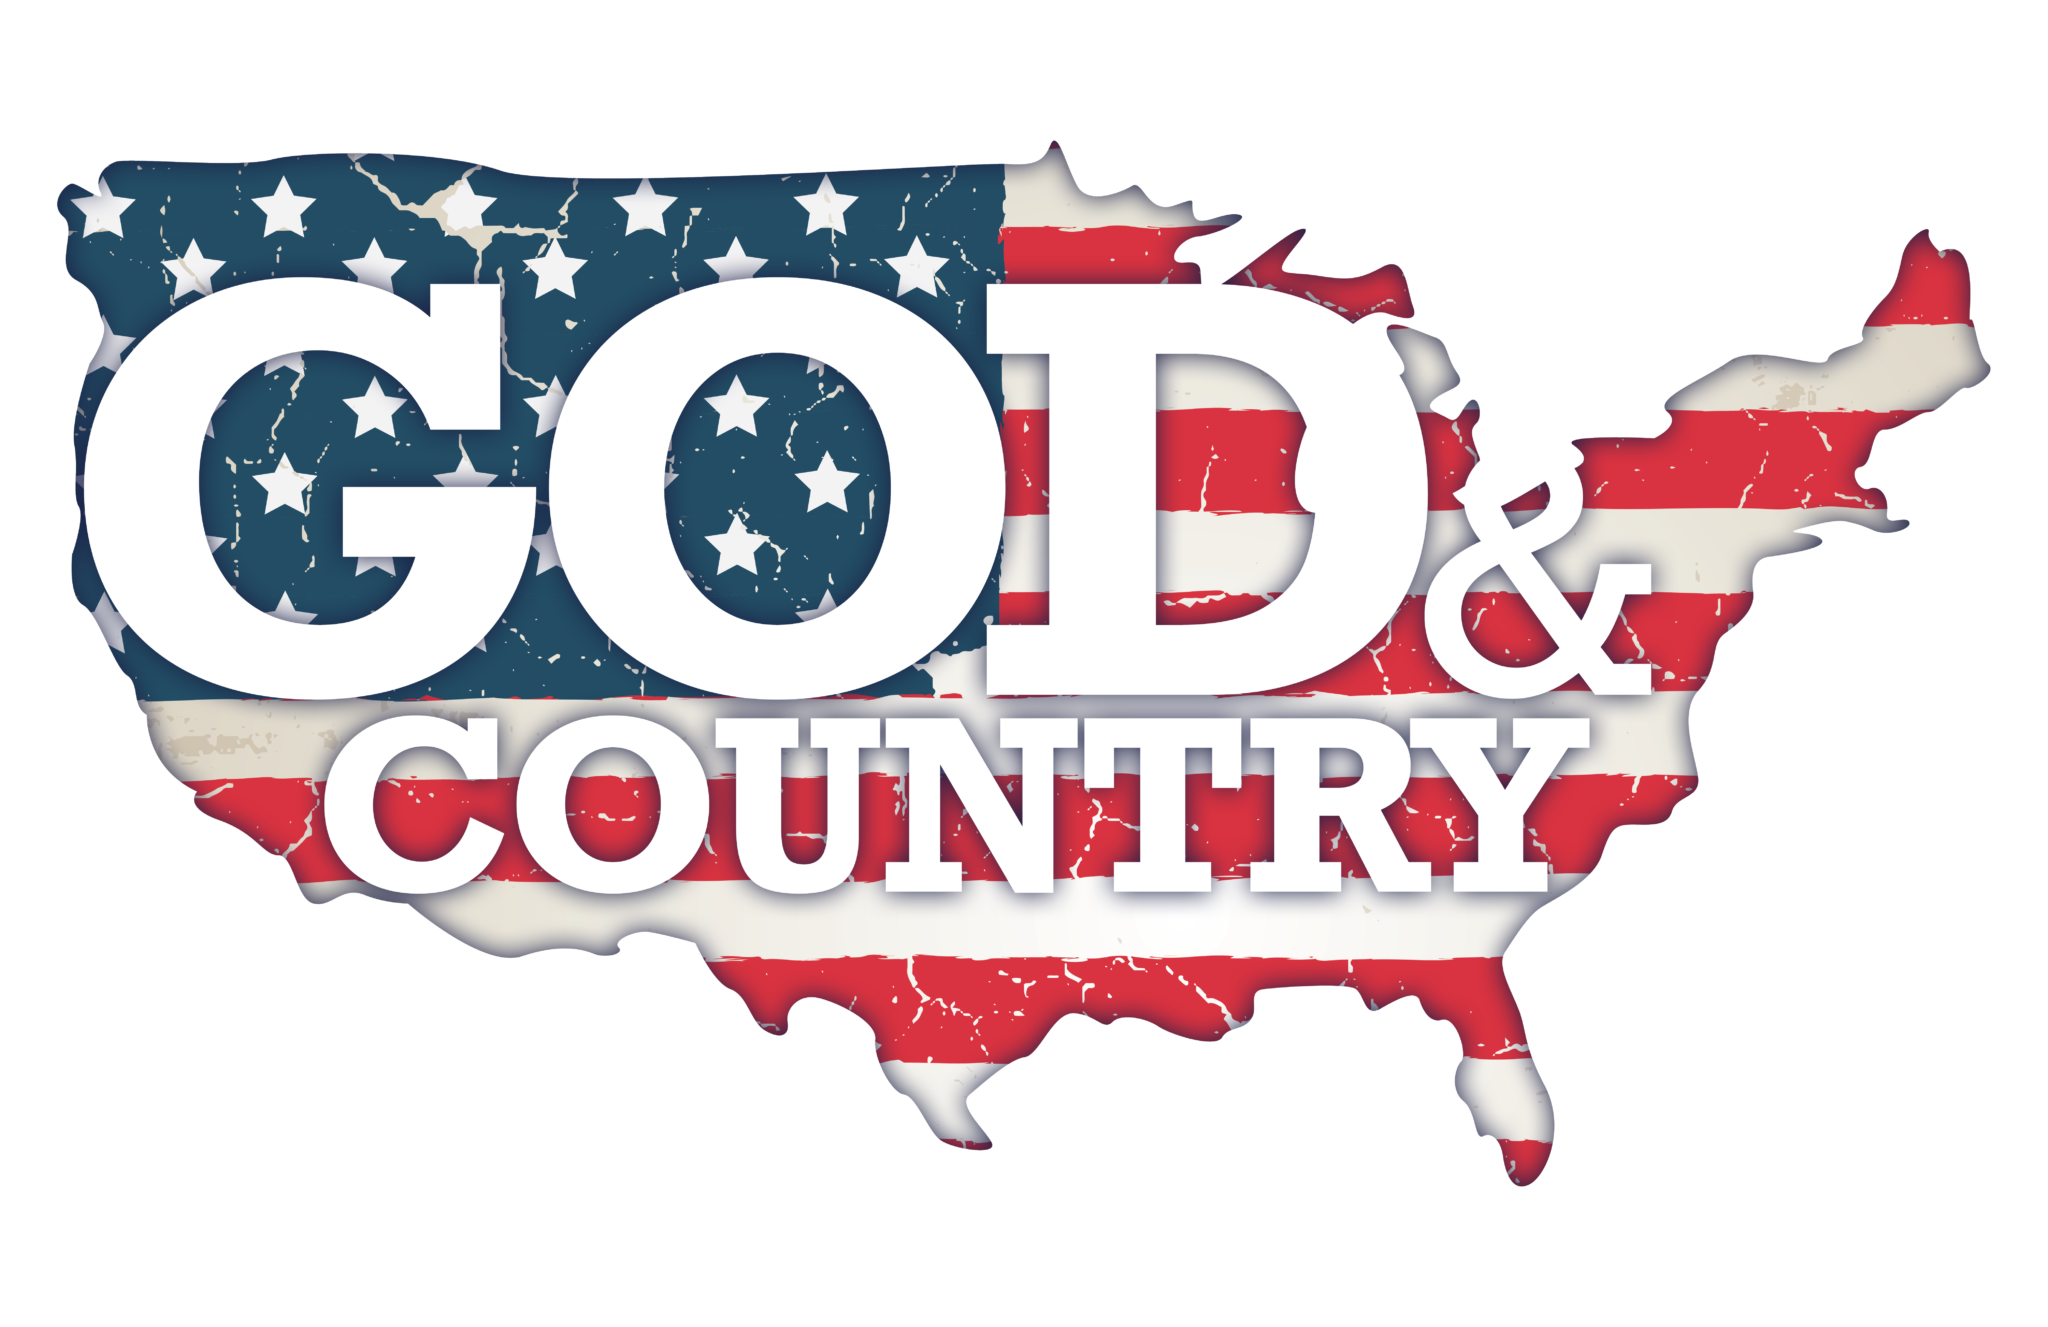 God&country-02-01 innershadow